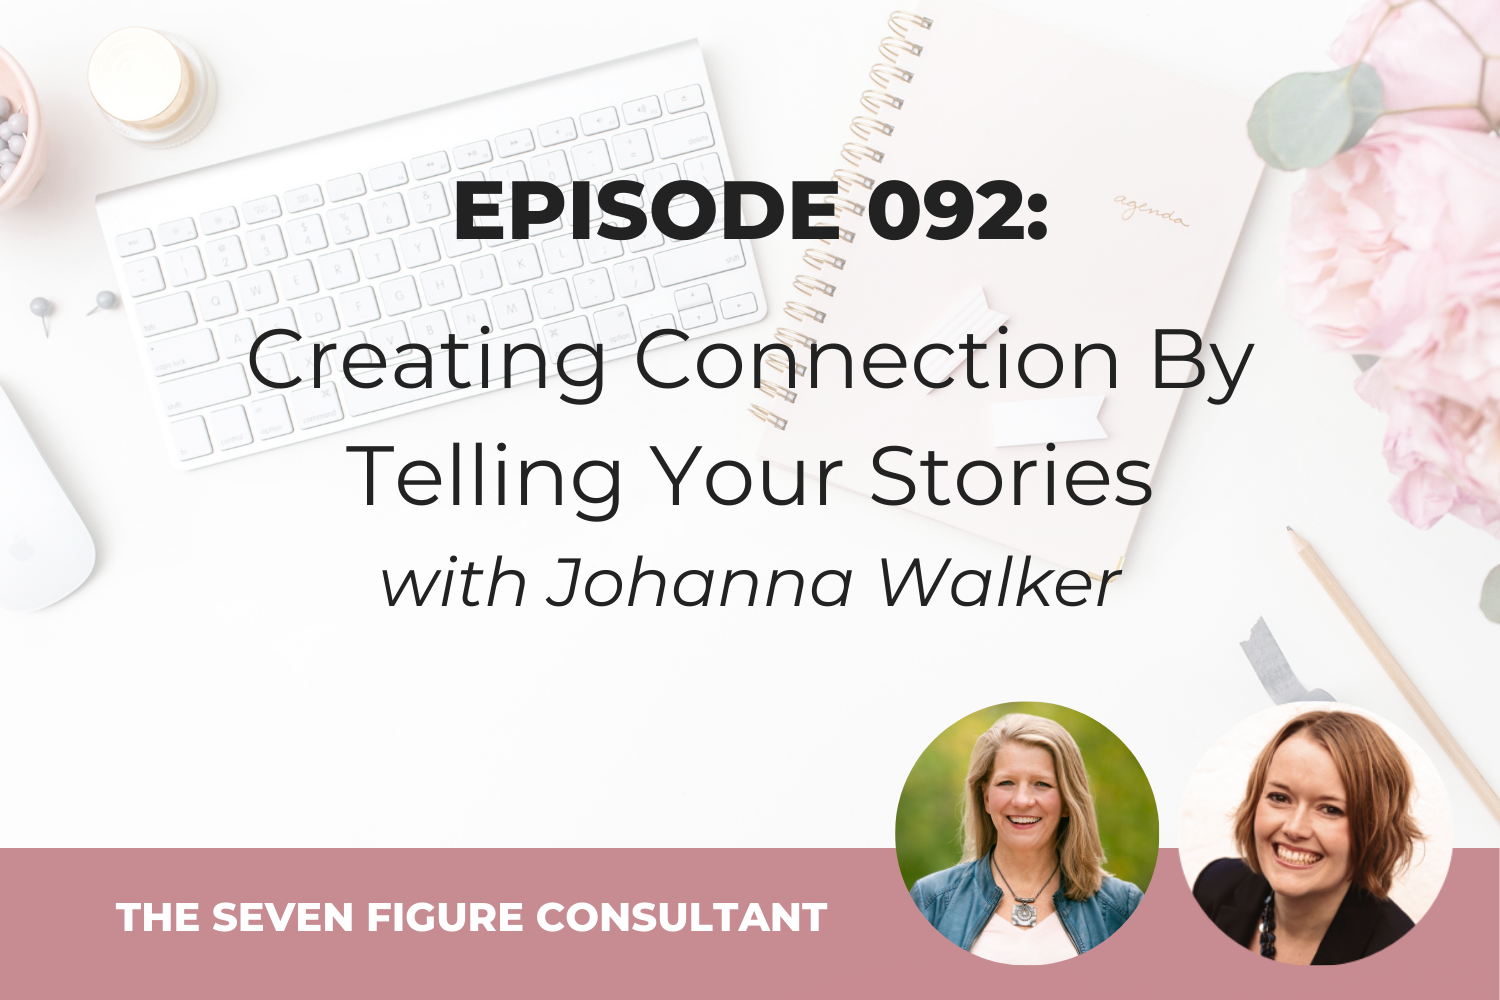 You are currently viewing Episode 092: Creating Connection By Telling Your Stories, with Johanna Walker